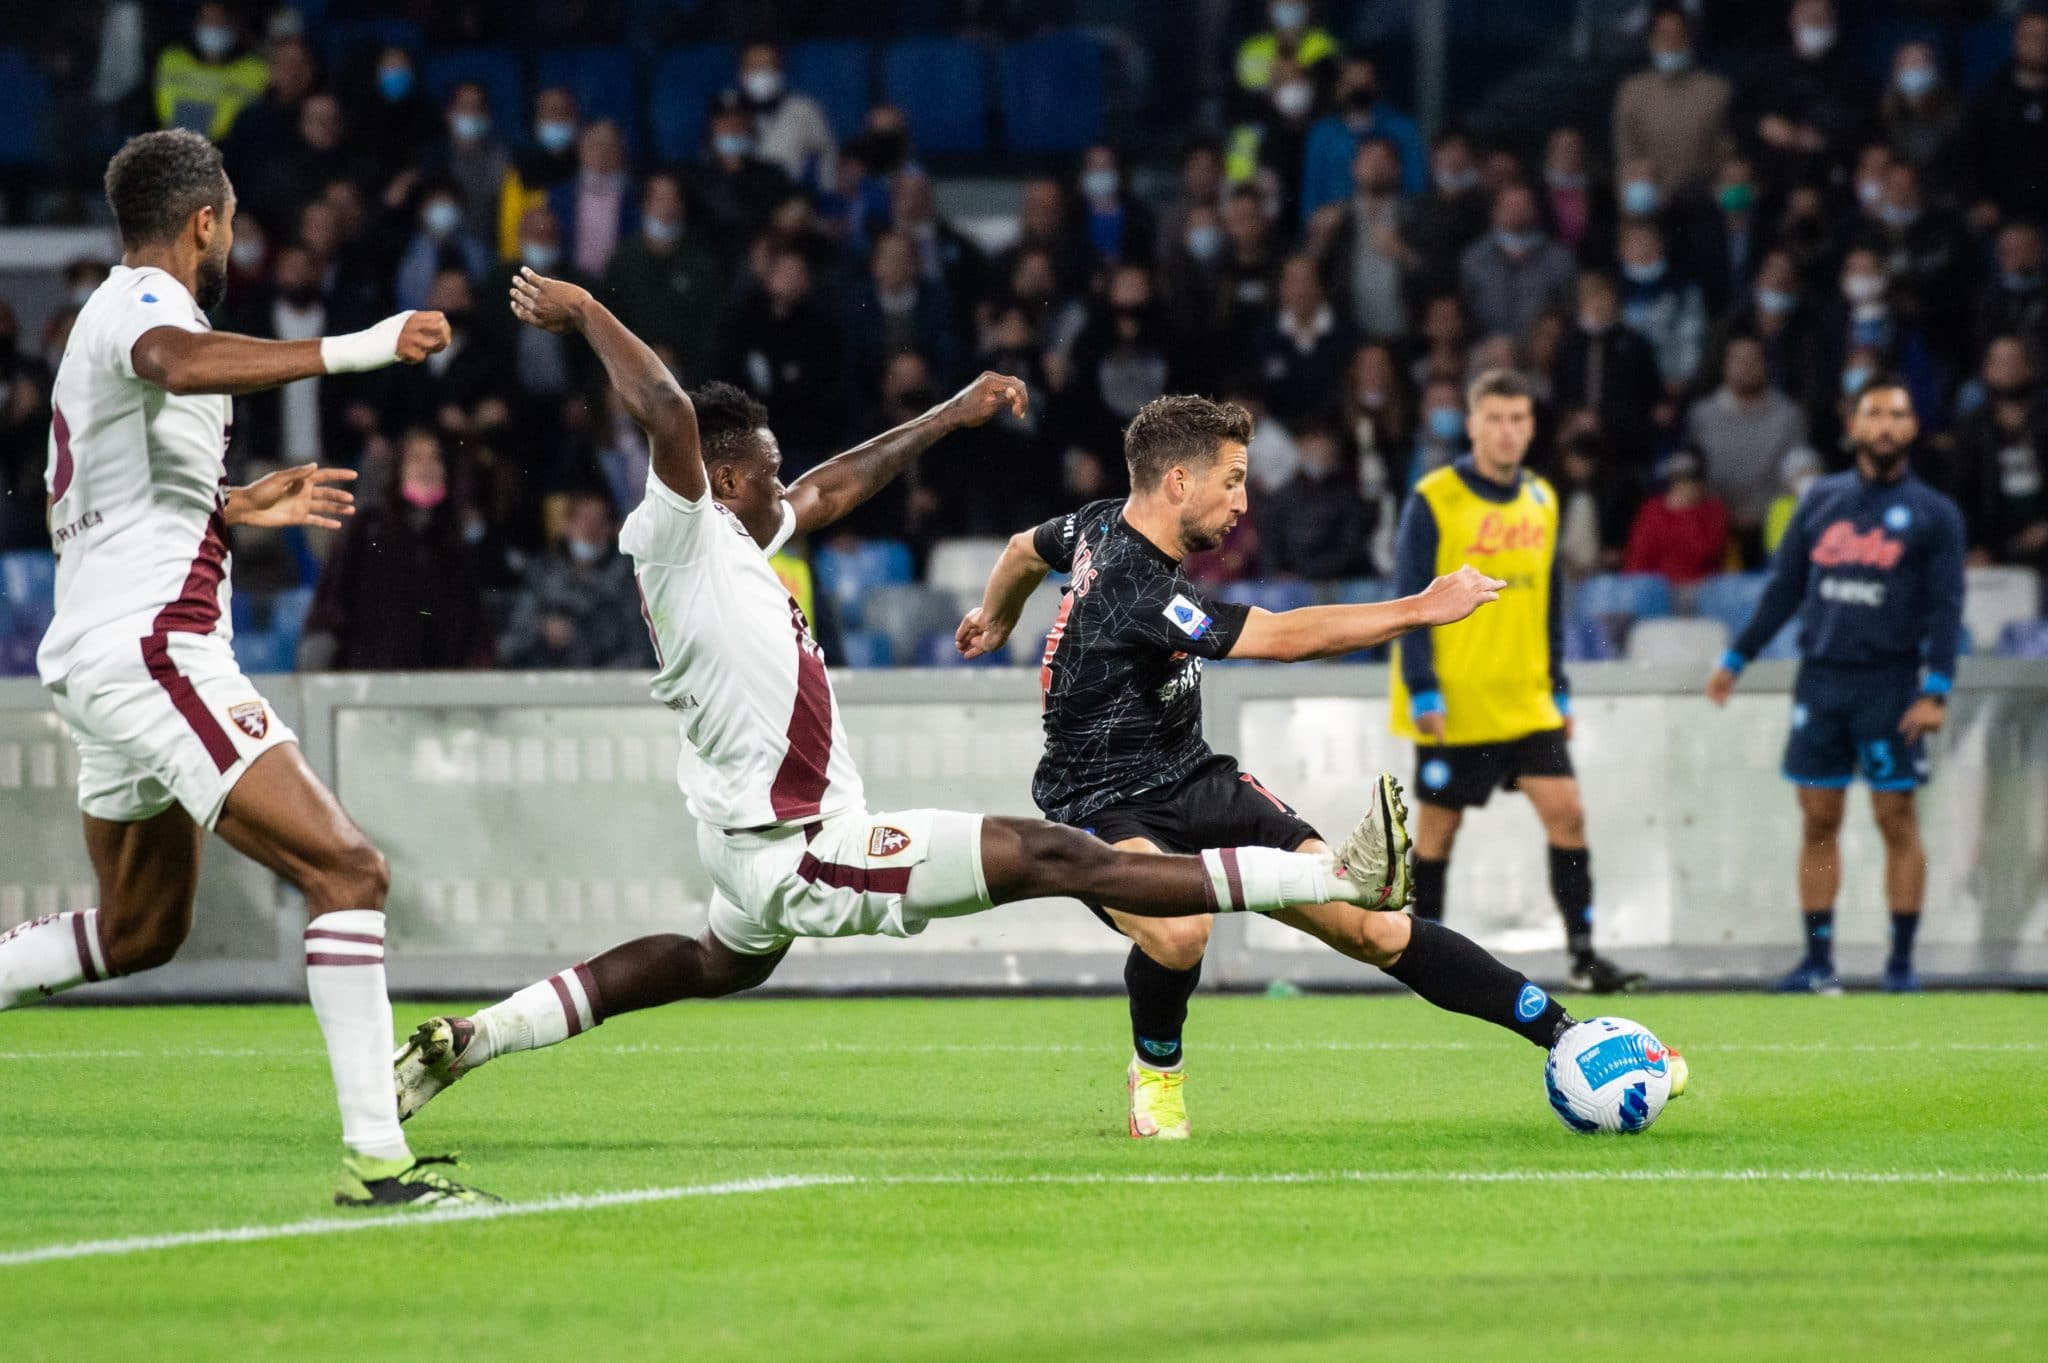 NAPLES, ITALY - OCTOBER 17: Dries Mertens of SSC Napoli and Wilfried Singo of Torino FC compete for the ball during the Serie A match between SSC Napoli and Torino FC at Stadio Diego Armando Maradona on October 17, 2021 in Naples, Italy. (Photo by Ivan Romano/Getty Images)